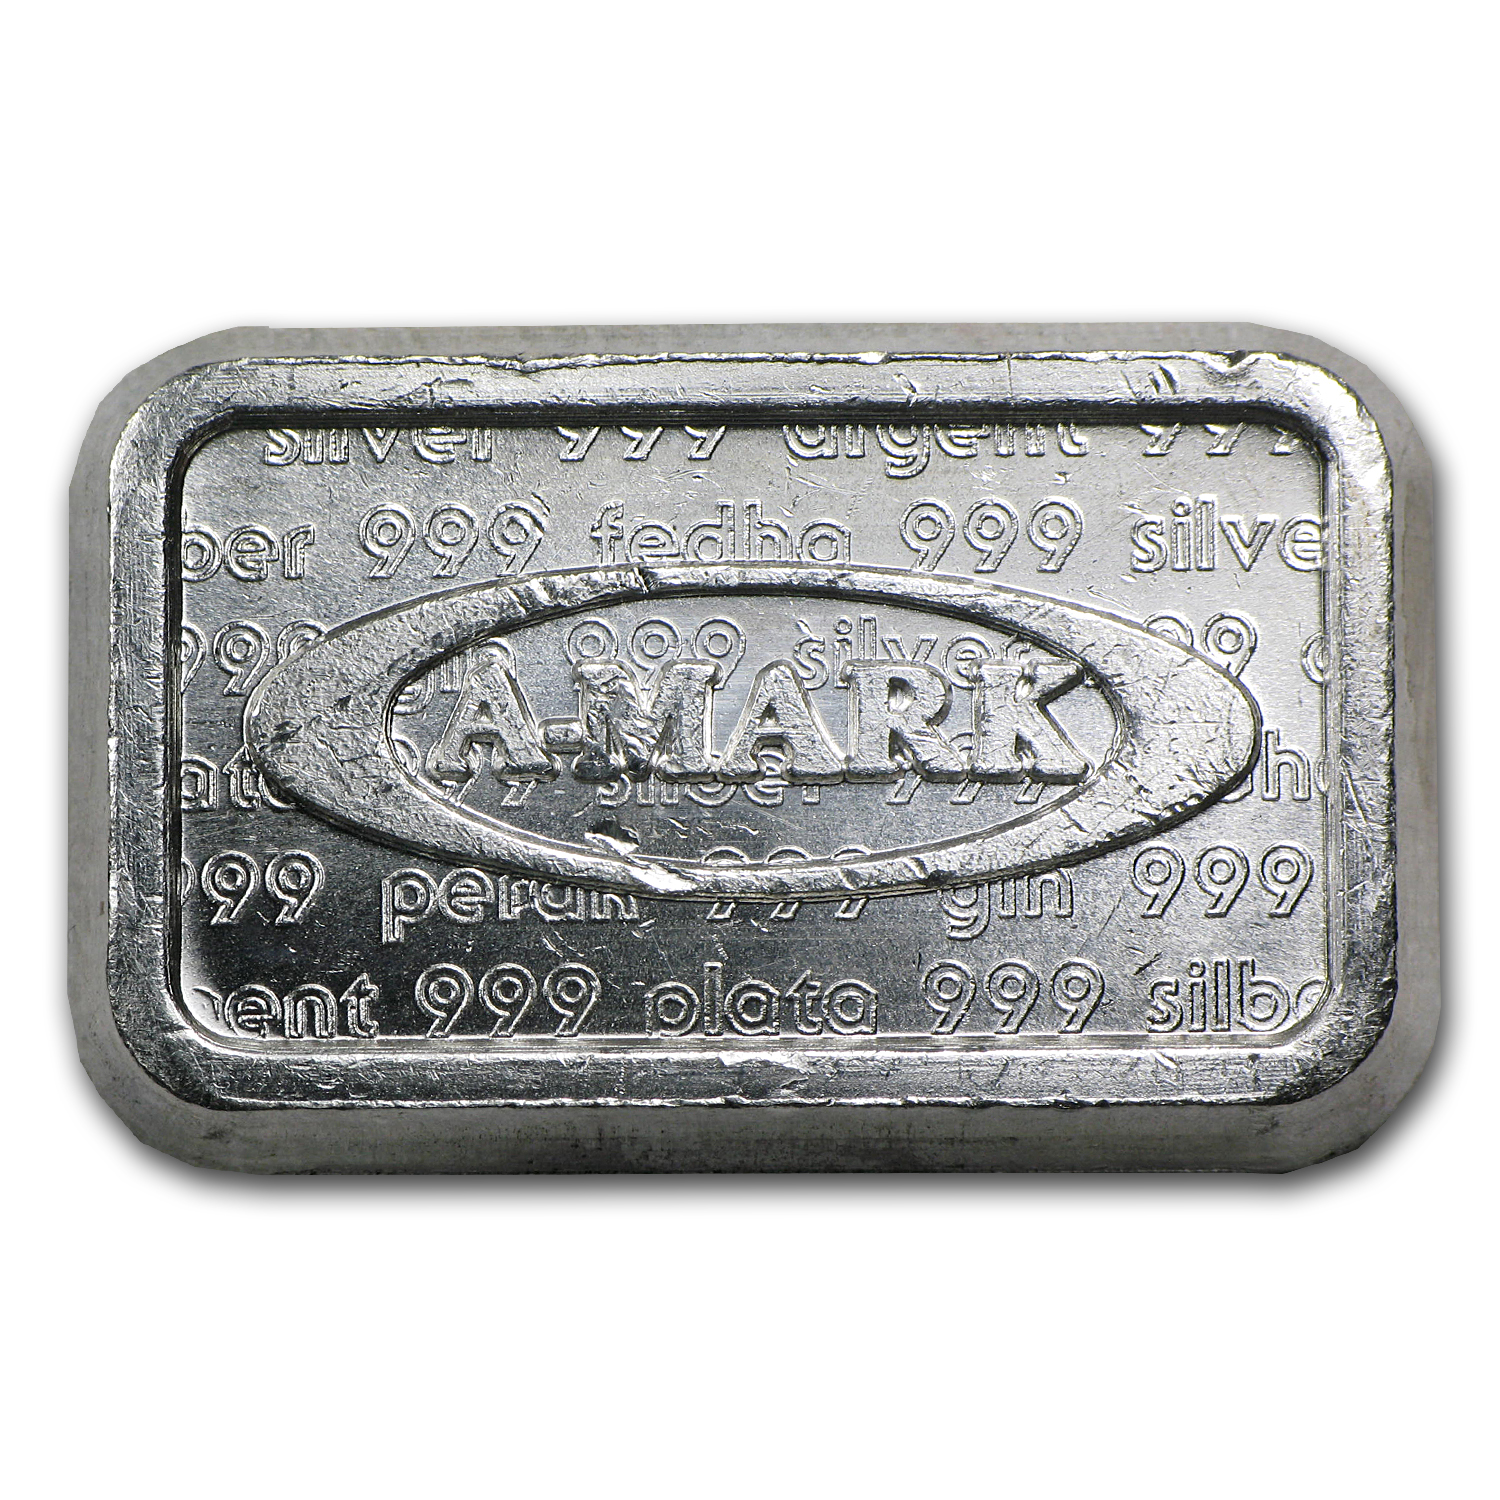 1 oz Silver Bars - A-Mark U.S.V.I. Ingot Co.